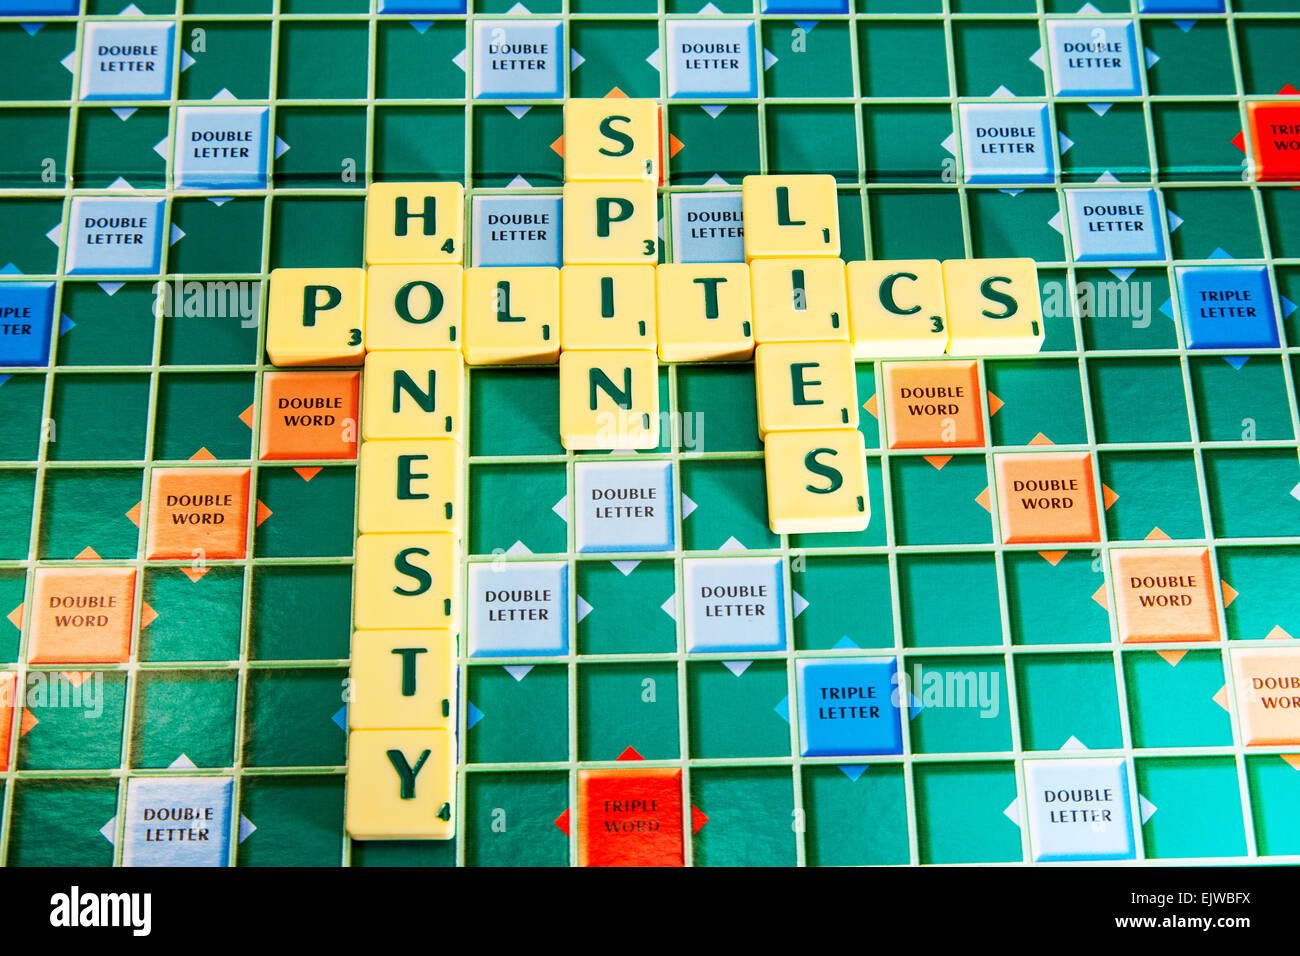 Politics honesty spin lies politicians government election honest lier's words using scrabble tiles to spell - Stock Image